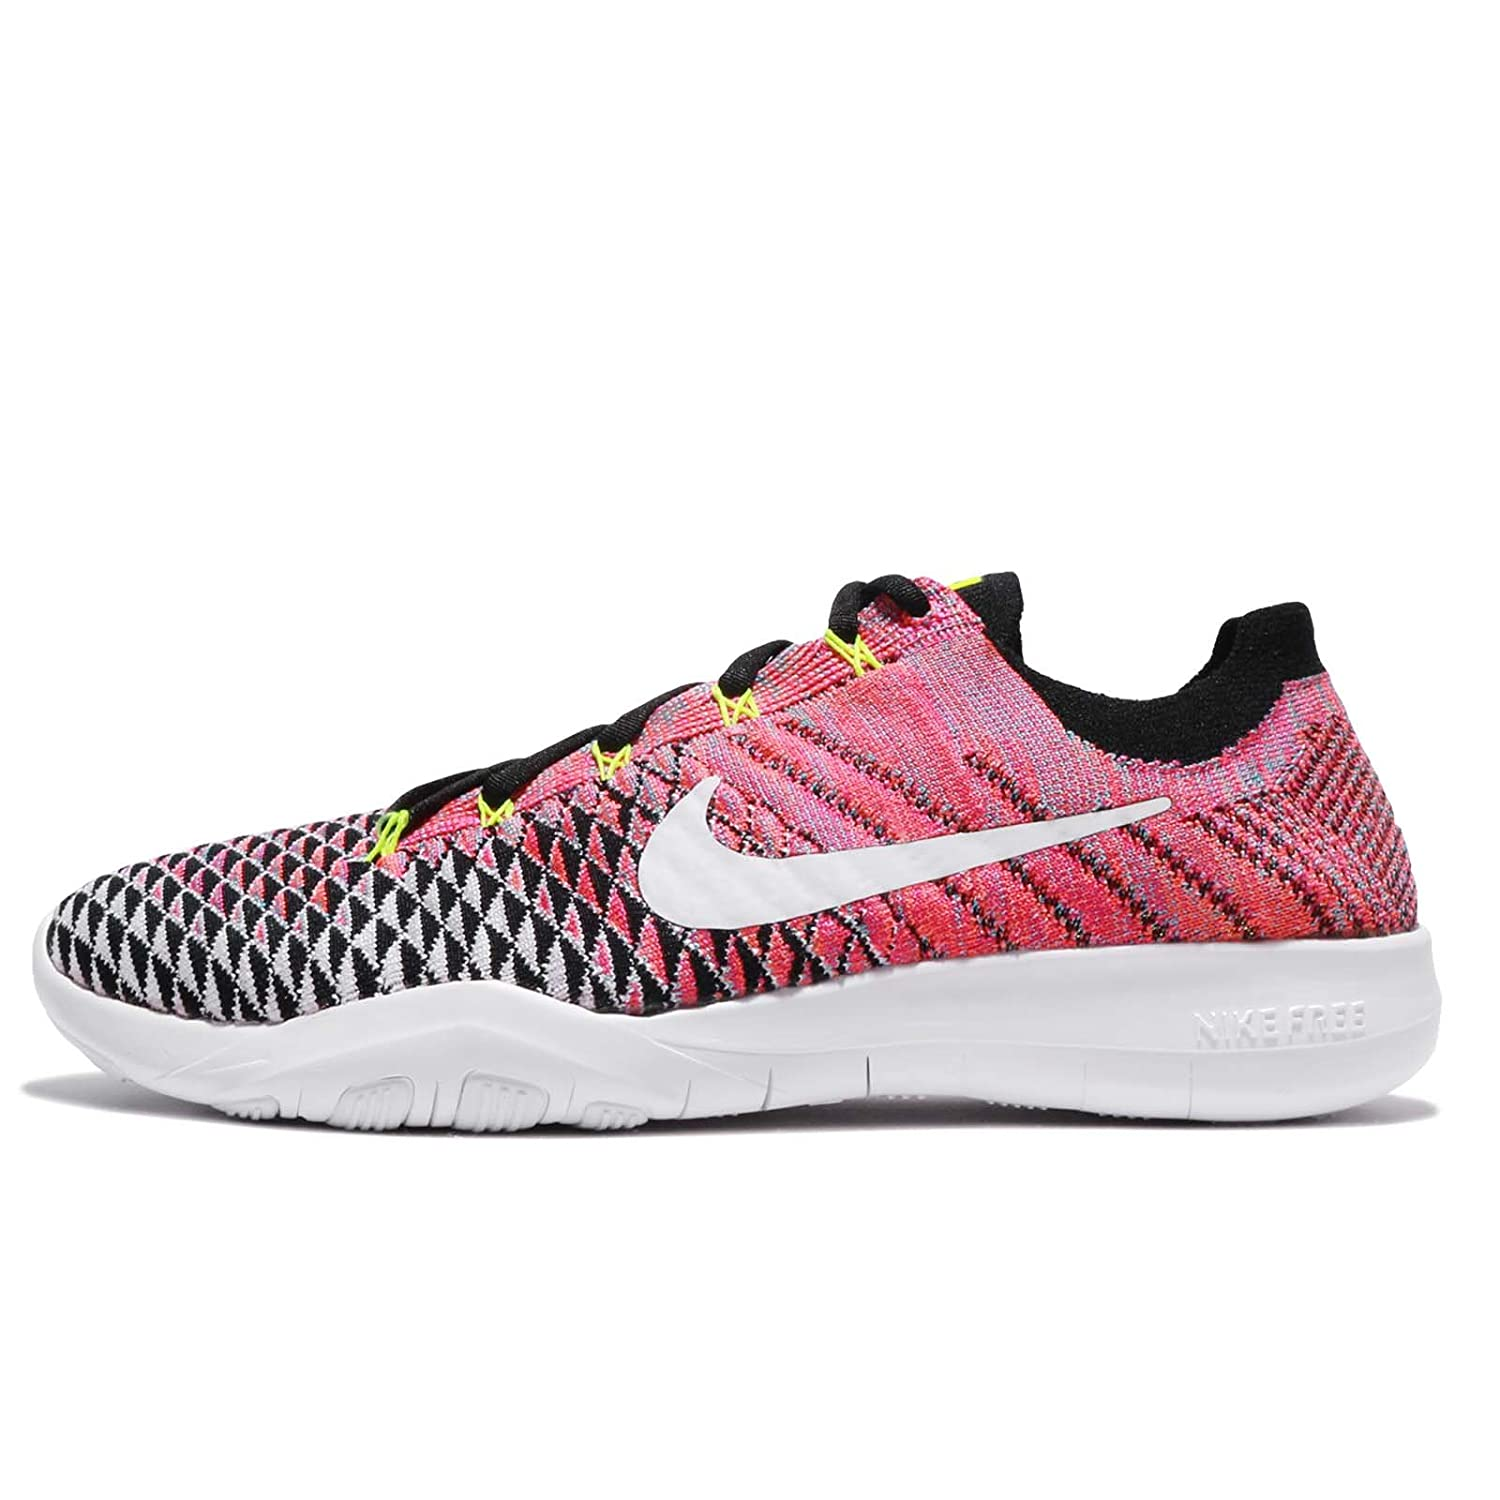 NIKE Free TR Flyknit 2 Womens Running Shoes B075V3MCCK 7 B(M) US|Black/White-Volt-Deadly Pink